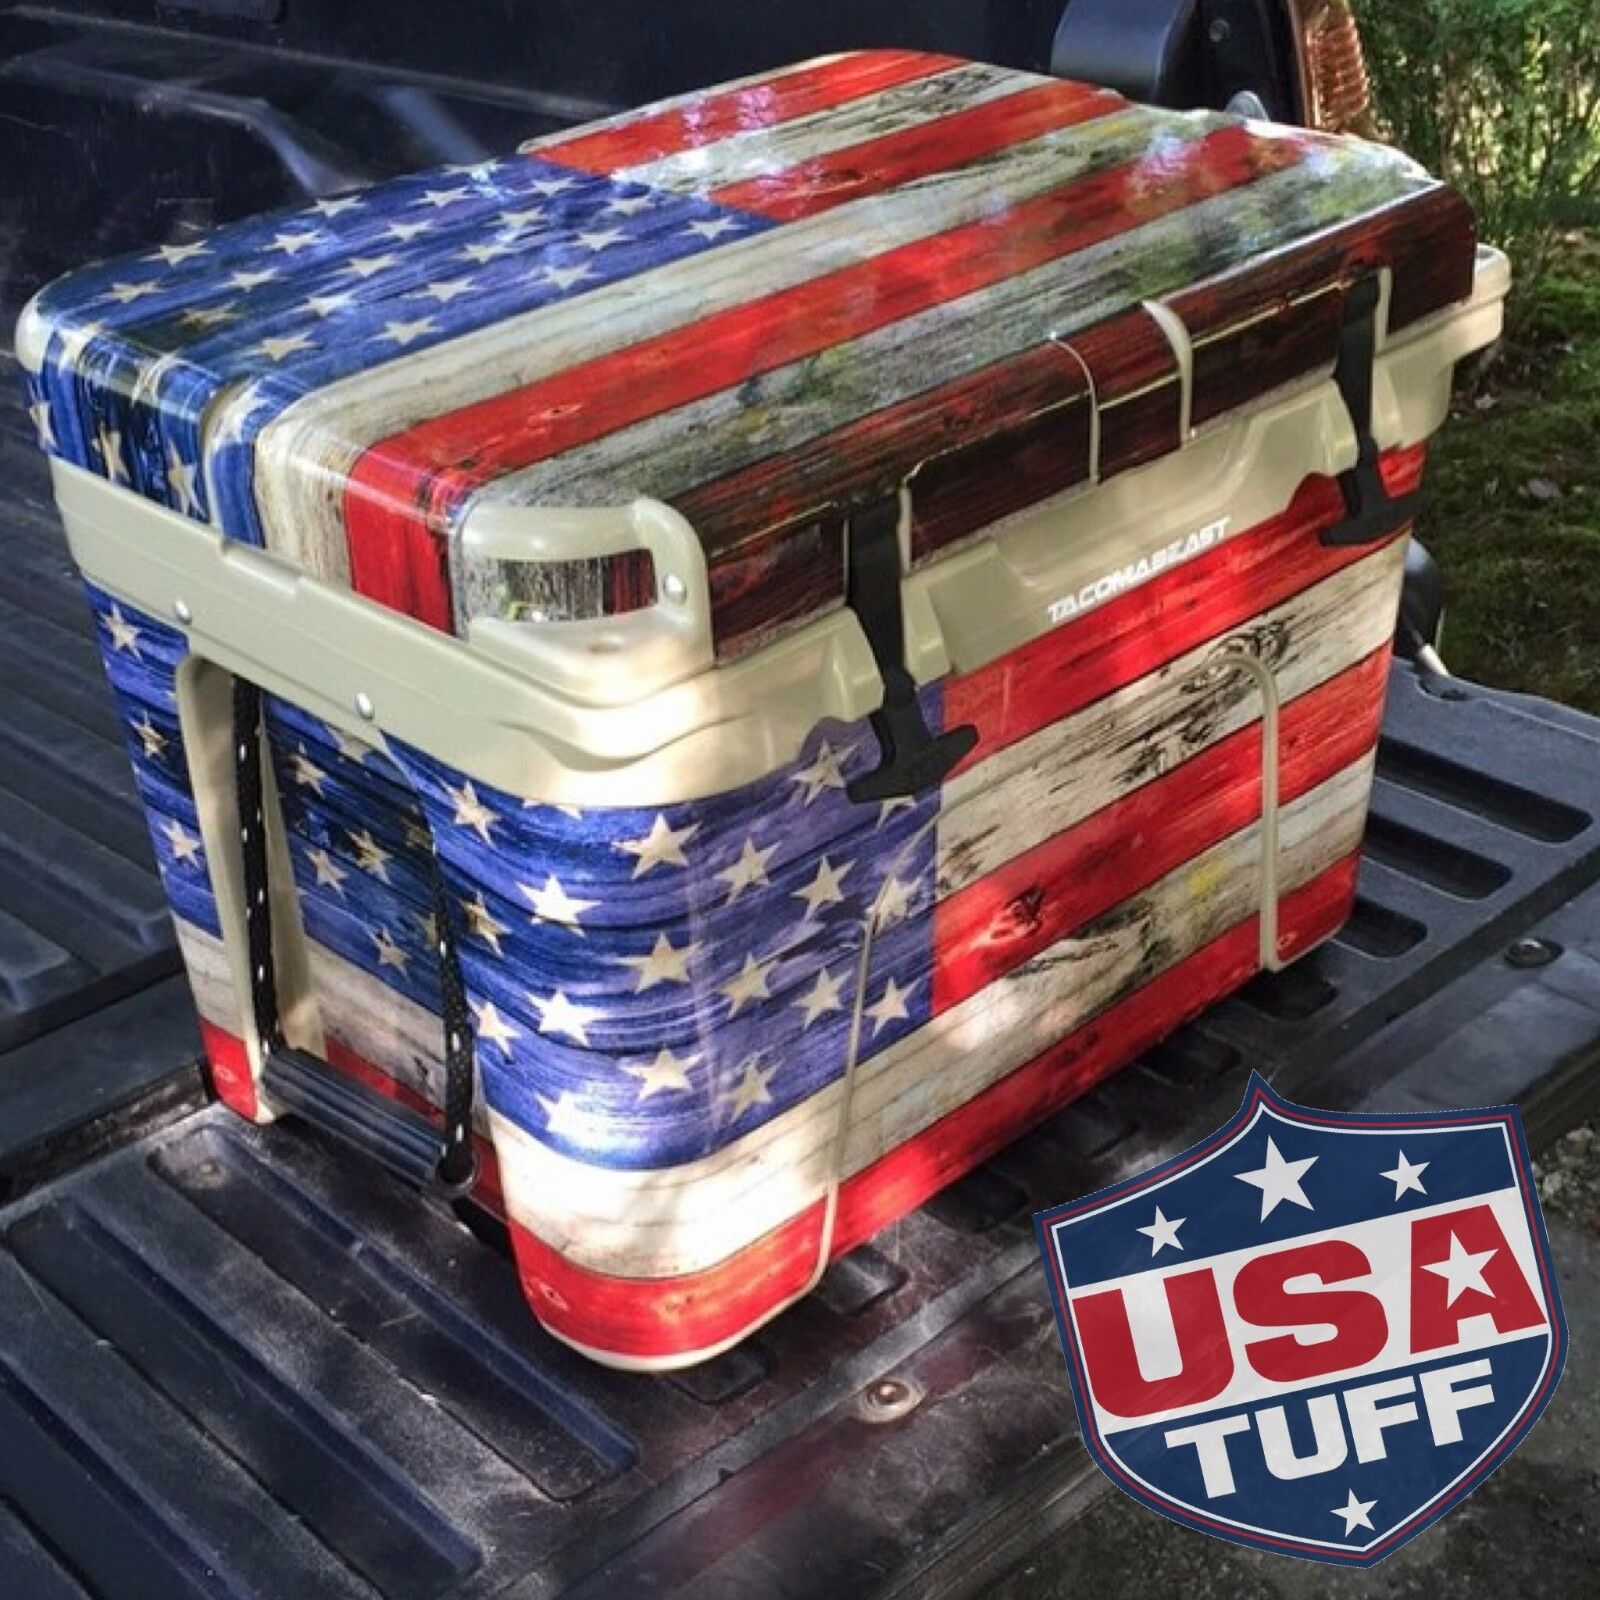 USATuff Cooler Decal Wrap fits Tundra YETI Tundra fits 125qt Full Niedriger US NAVY Digicamo 1dfdba